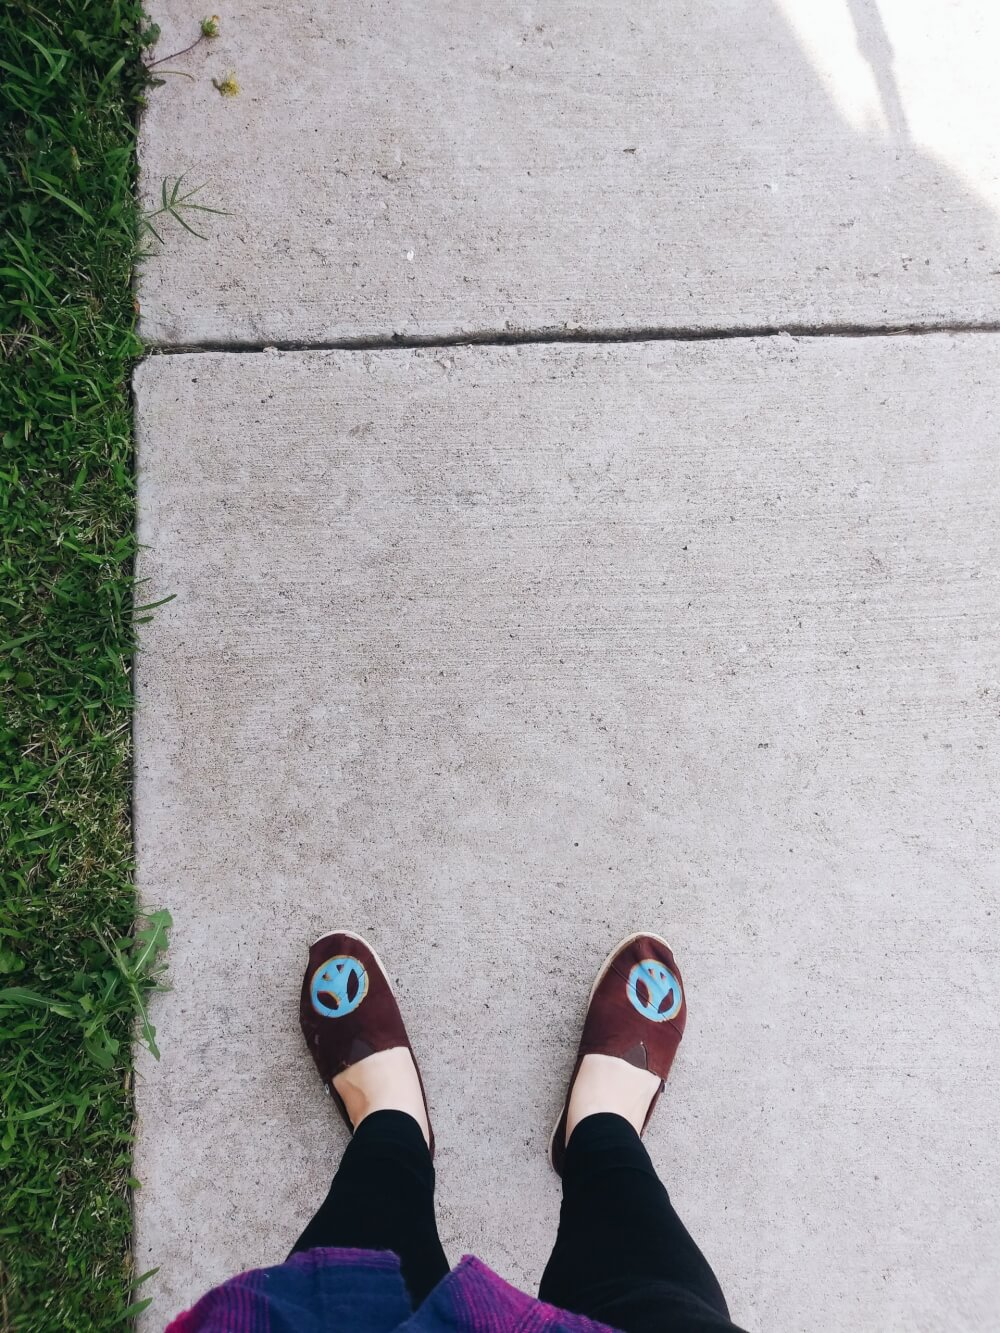 From where I stand, on a sidewalk